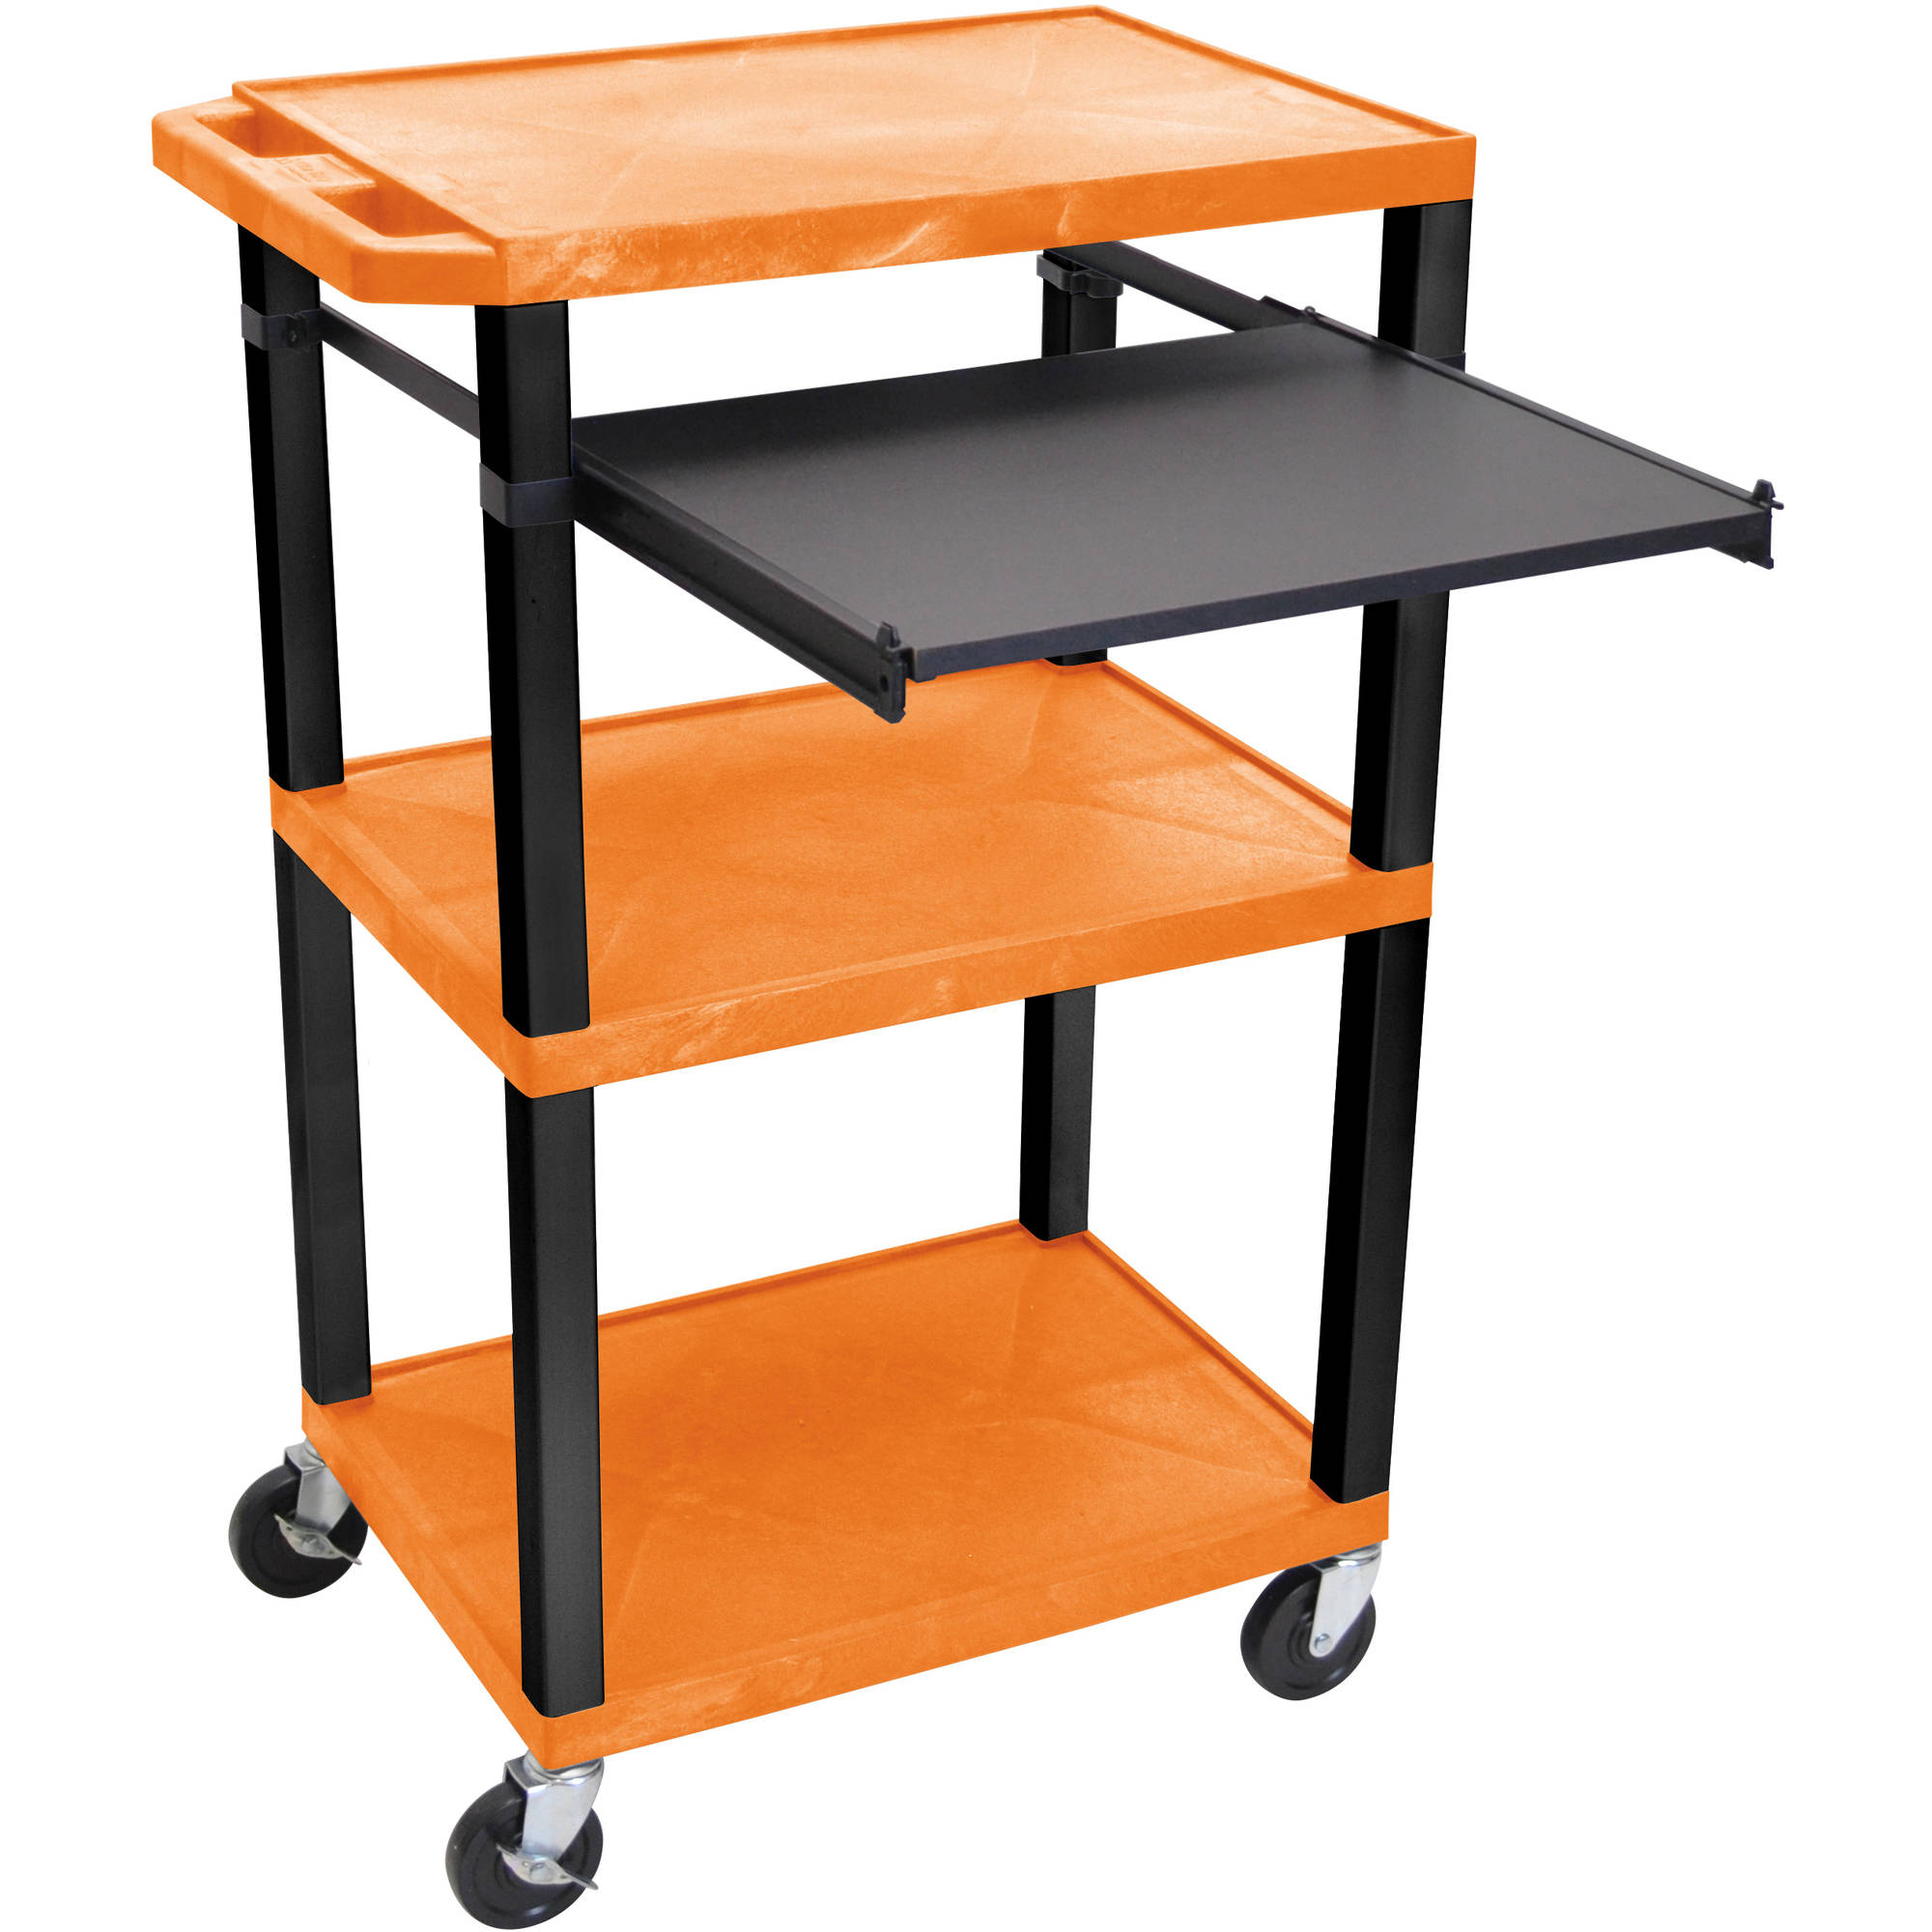 H. Wilson Tuffy 3-Shelf A/V Cart with Electric, Black Front Pullout Shelf, Orange Shelves and Black Legs